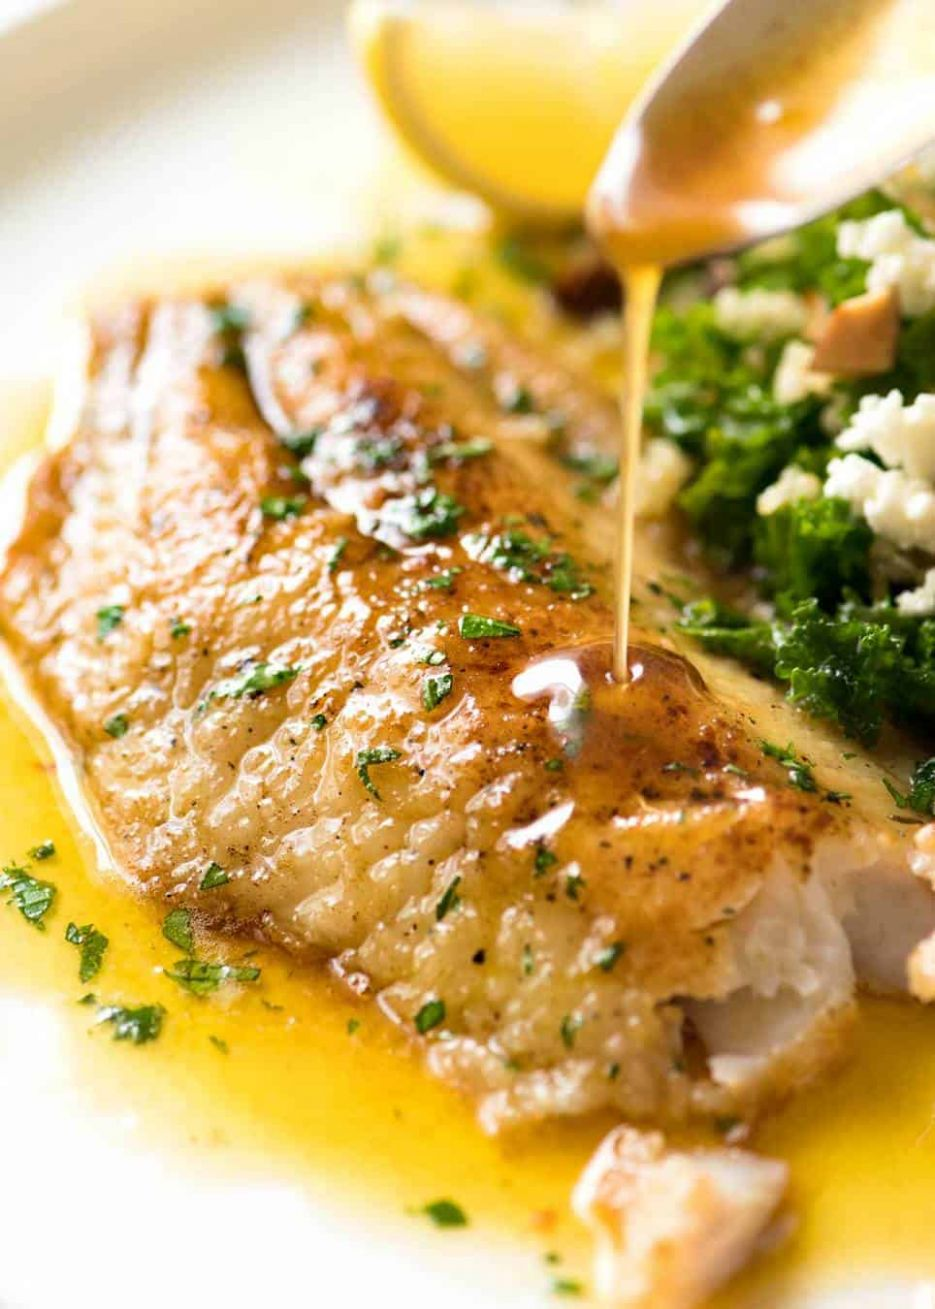 Killer Lemon Butter Sauce for Fish | RecipeTin Eats